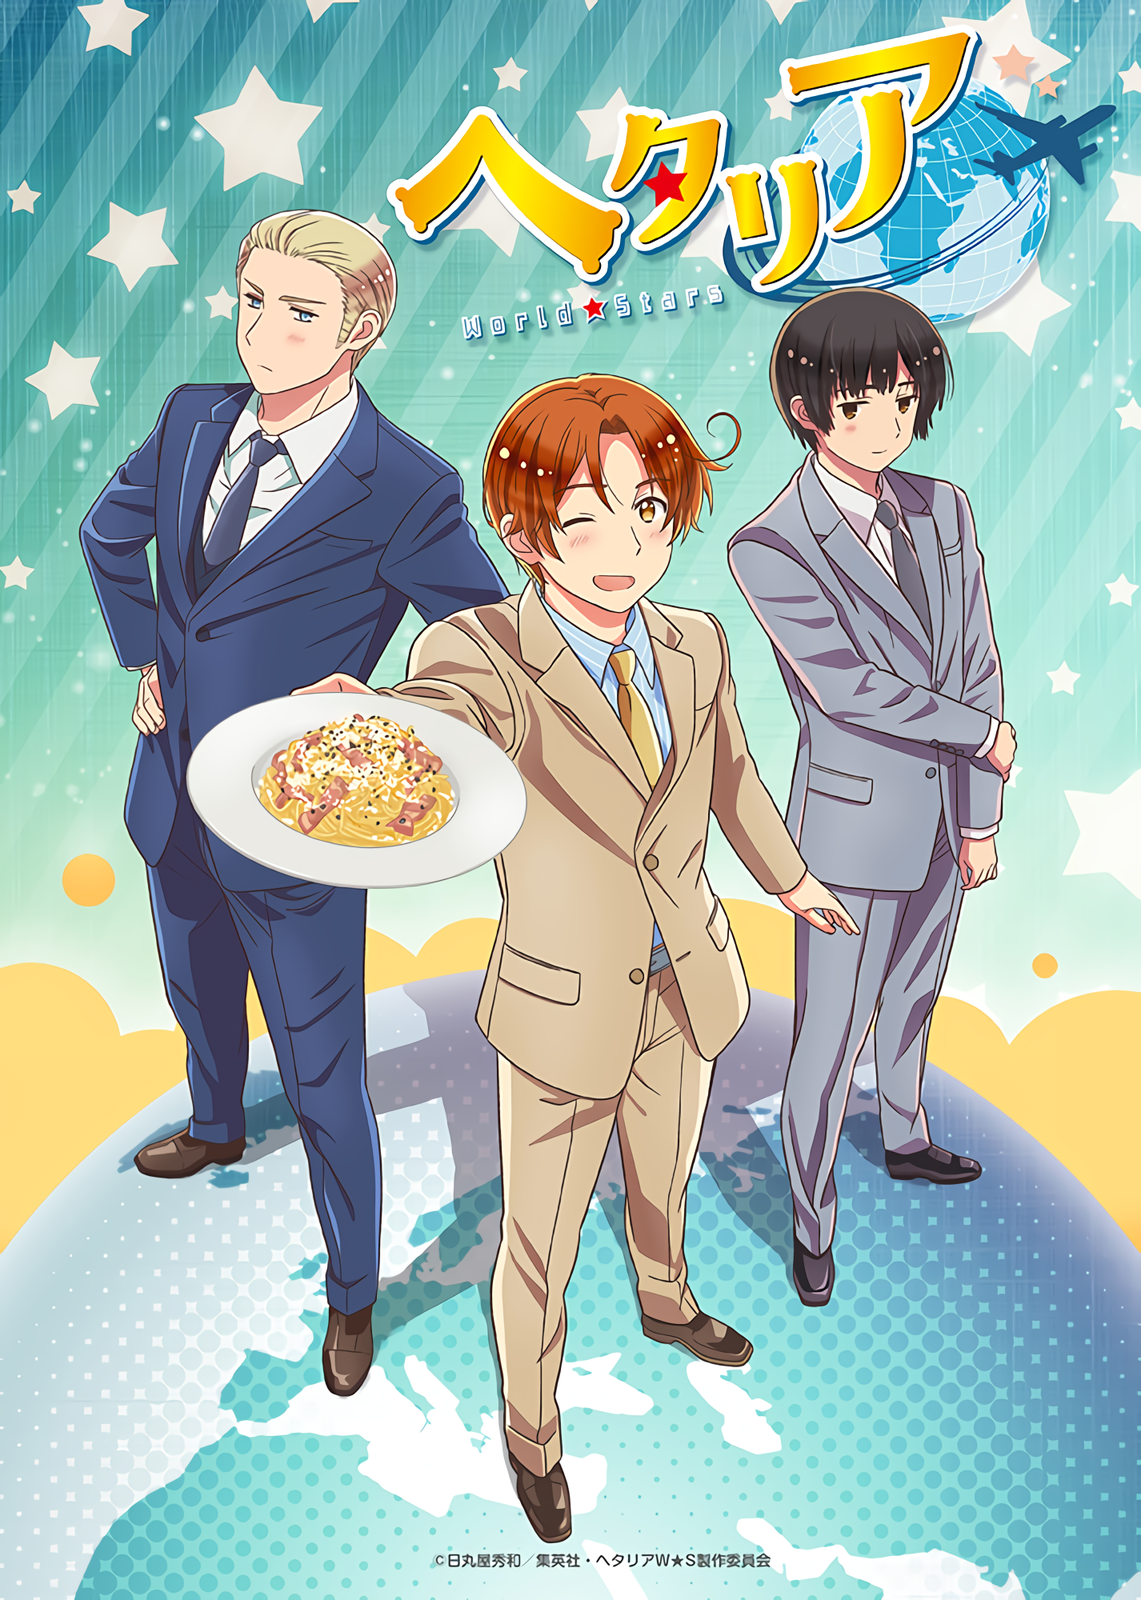 Hetalia World Stars: Visual 1